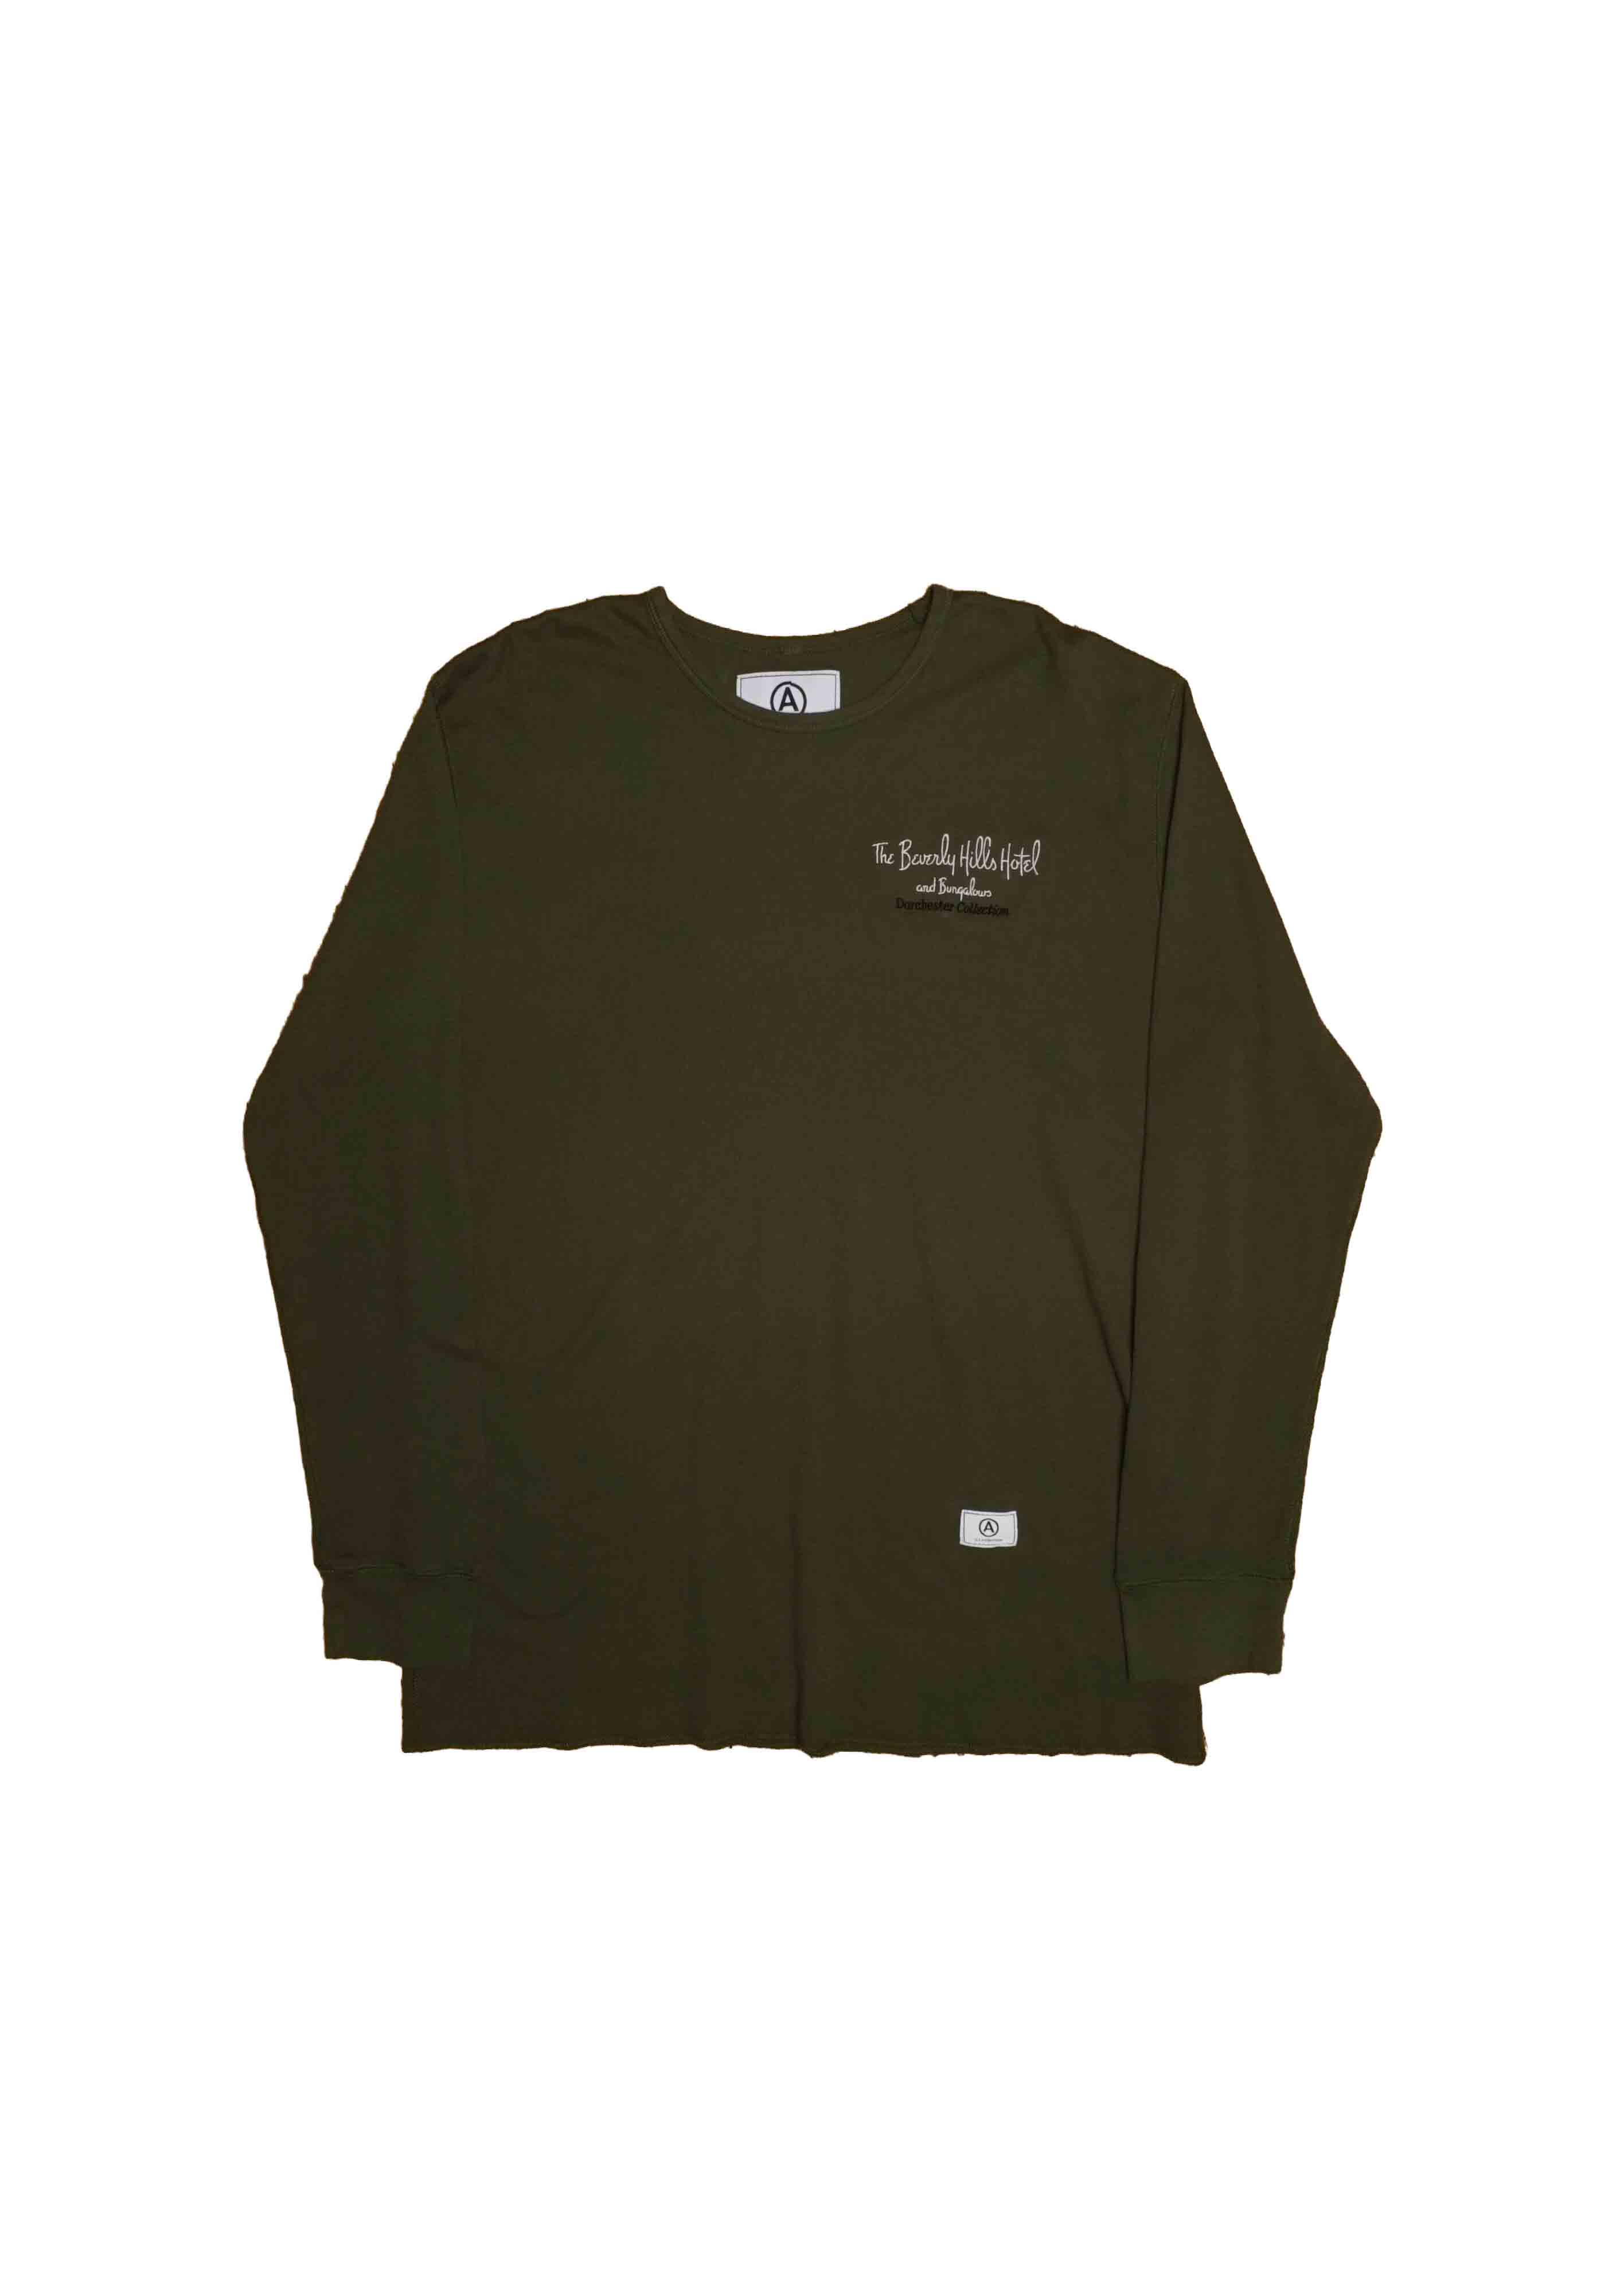 BEVERLY HILLS HOTEL // THERMAL MILITARY LONGSLEEVE